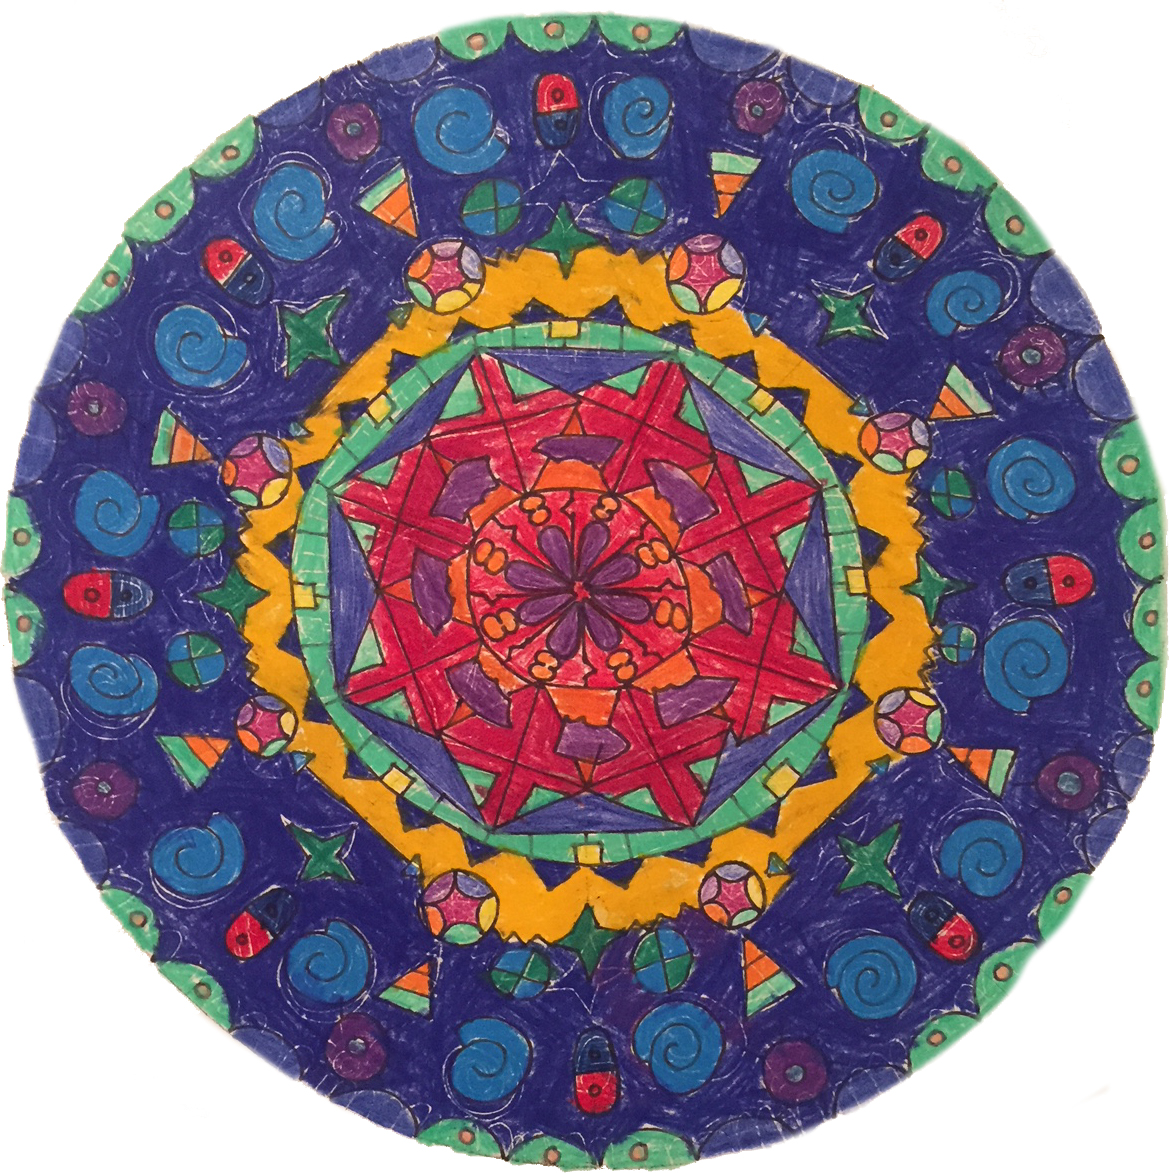 Sample artwork of a rug design for the Crossroads and Avenues Project. All designs for this inaugural collection of rugs are round recalling both the globe and a mandala signifying the connected nature of all humanity. | Image courtesy of Kyle and Kath.